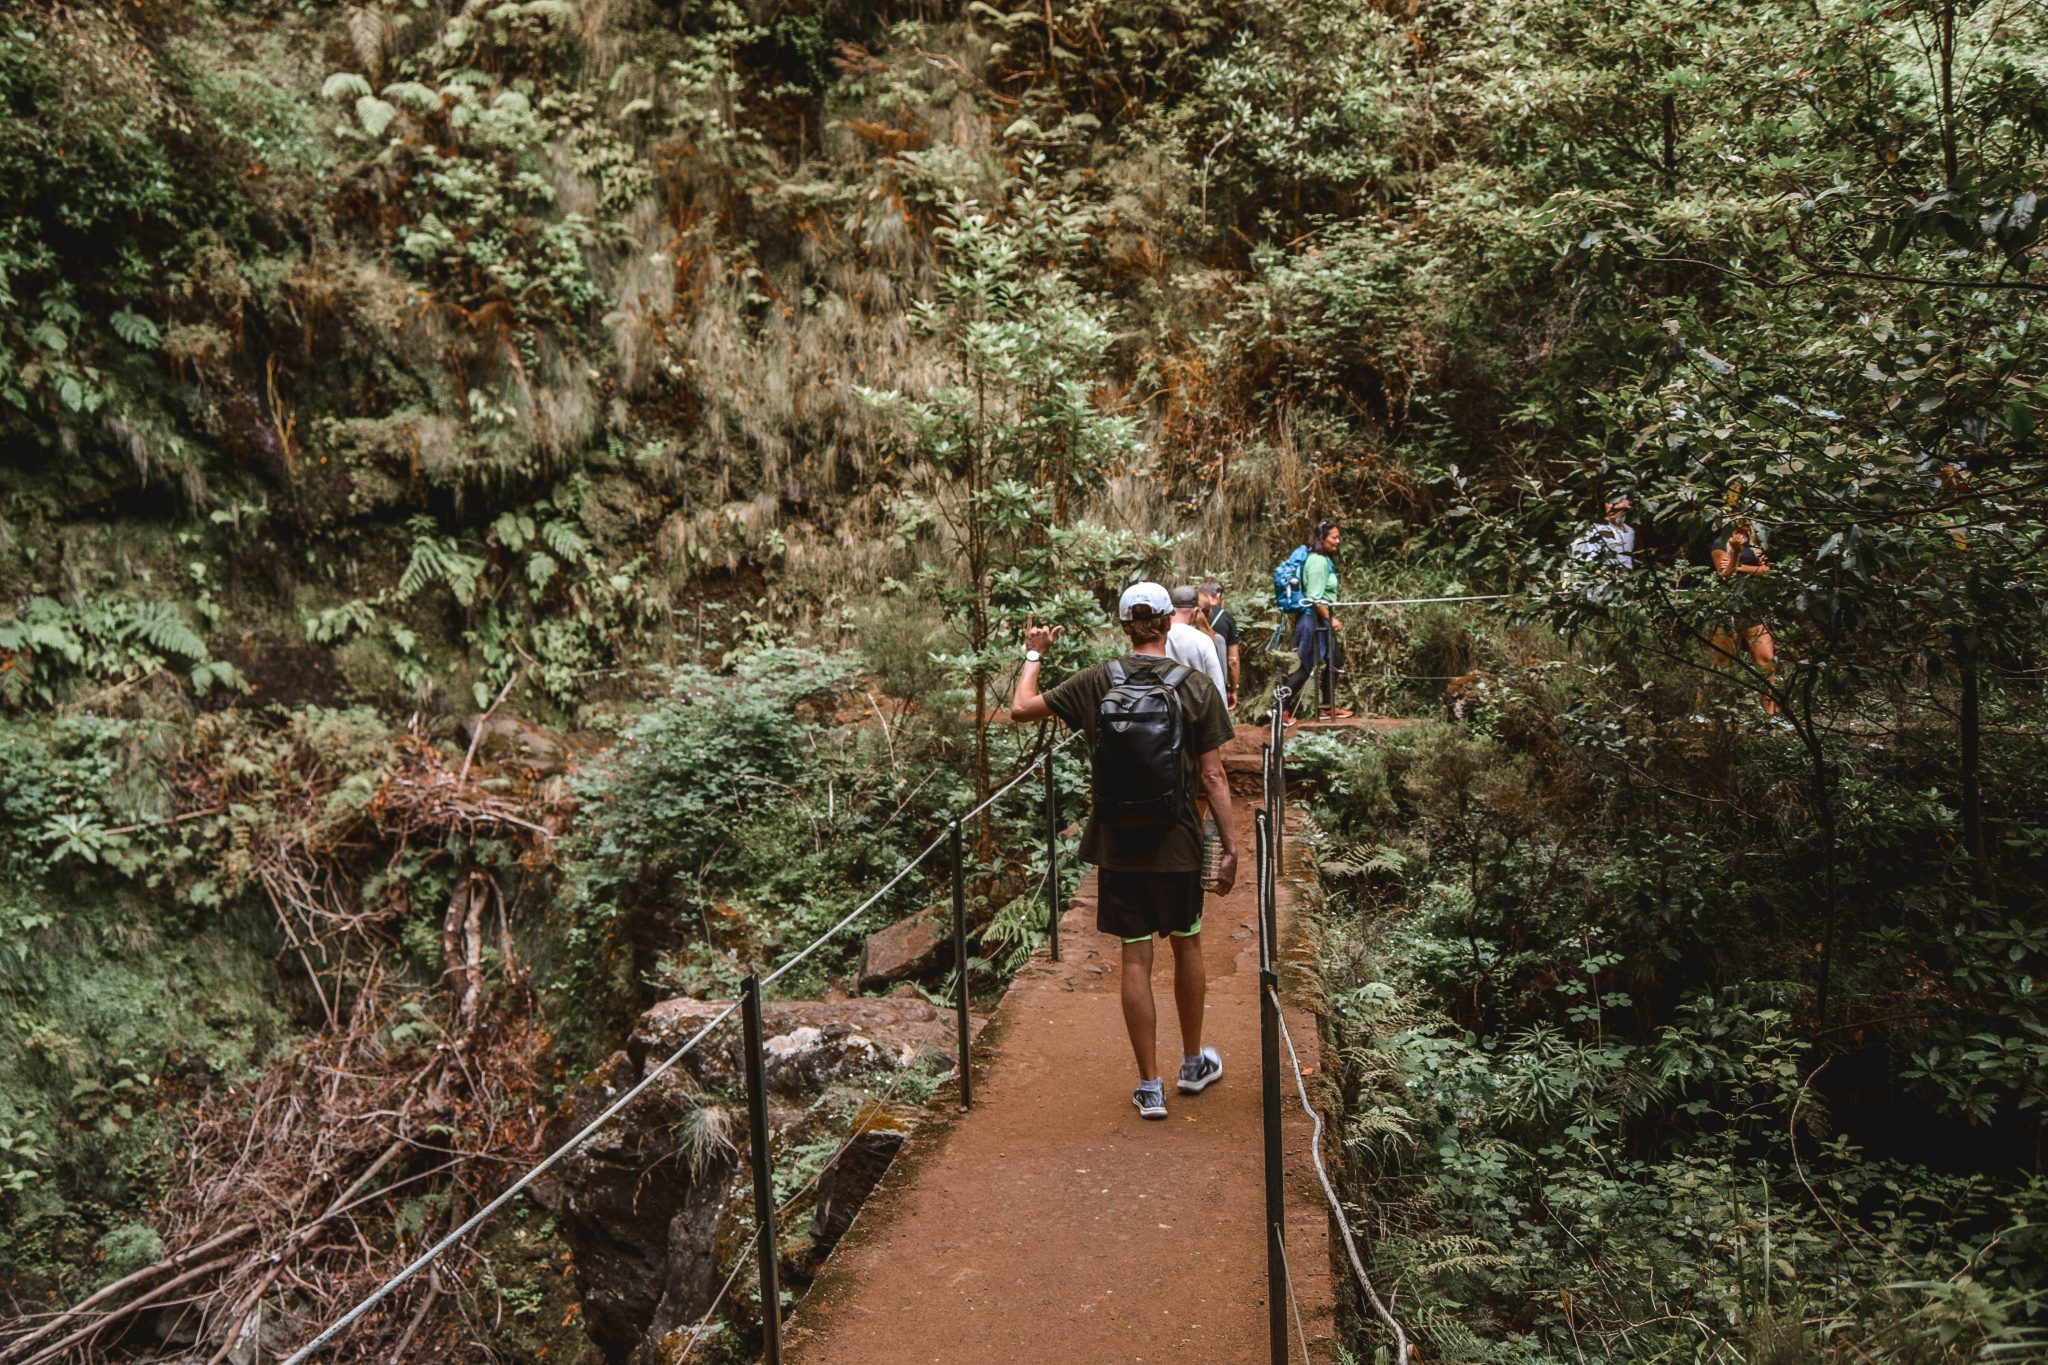 Wanderers & Warriors - Charlie & Lauren UK Travel Couple - Levada Caldeirao Verde Madeira Levadas Madeira Walks